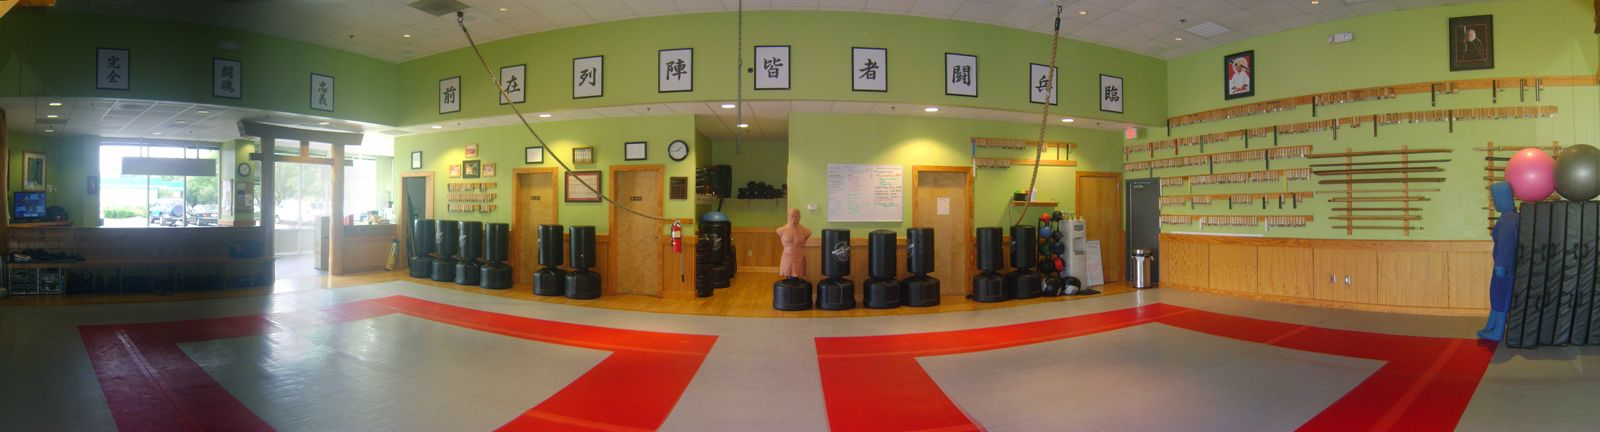 Chapel Hill Quest Center This Is Actually Where My First Lesson On My Martial Arts Journey Was Taken It Is Also One Dojo Design Martial Arts Gym Martial Arts